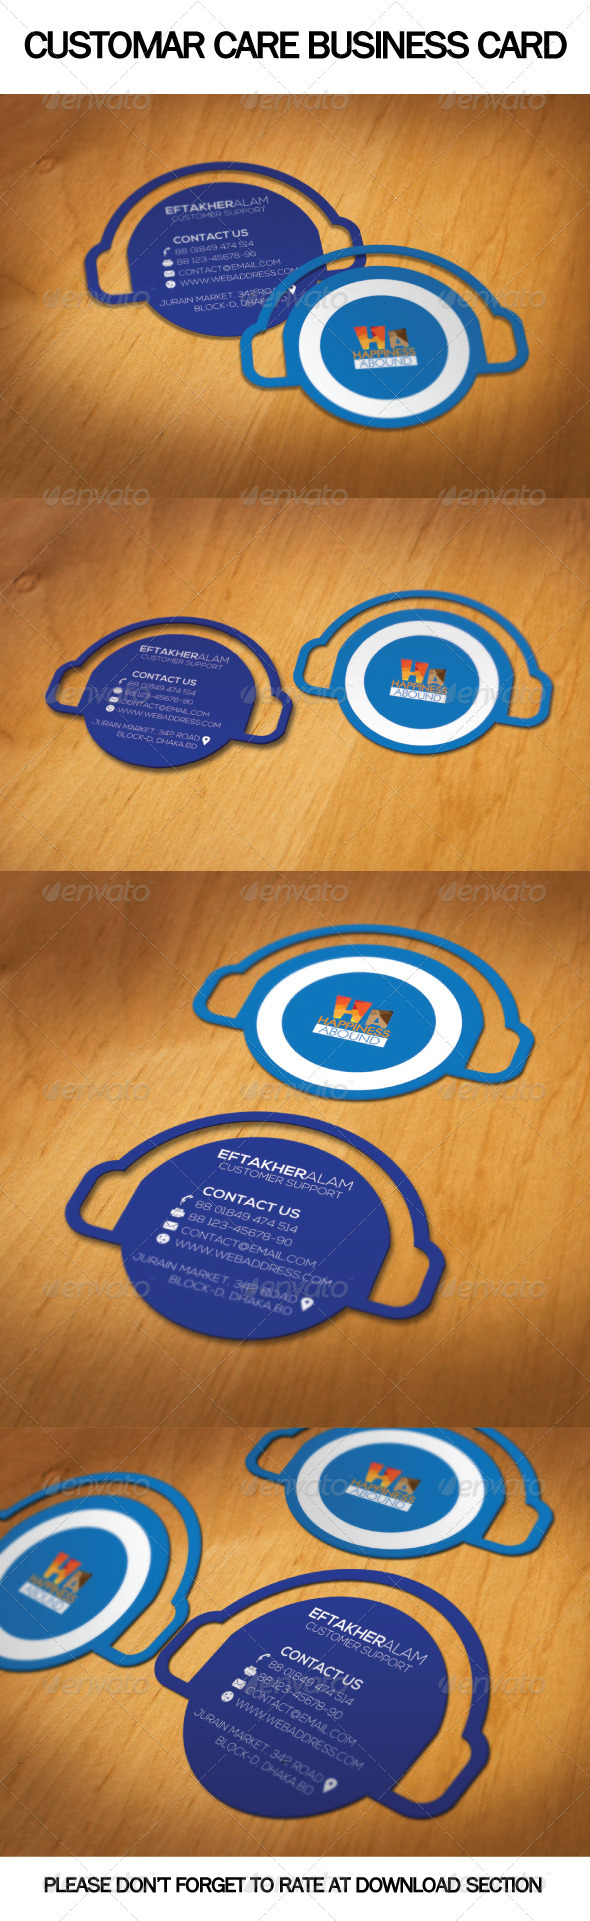 Customar Care Business Card - Real Objects Business Cards